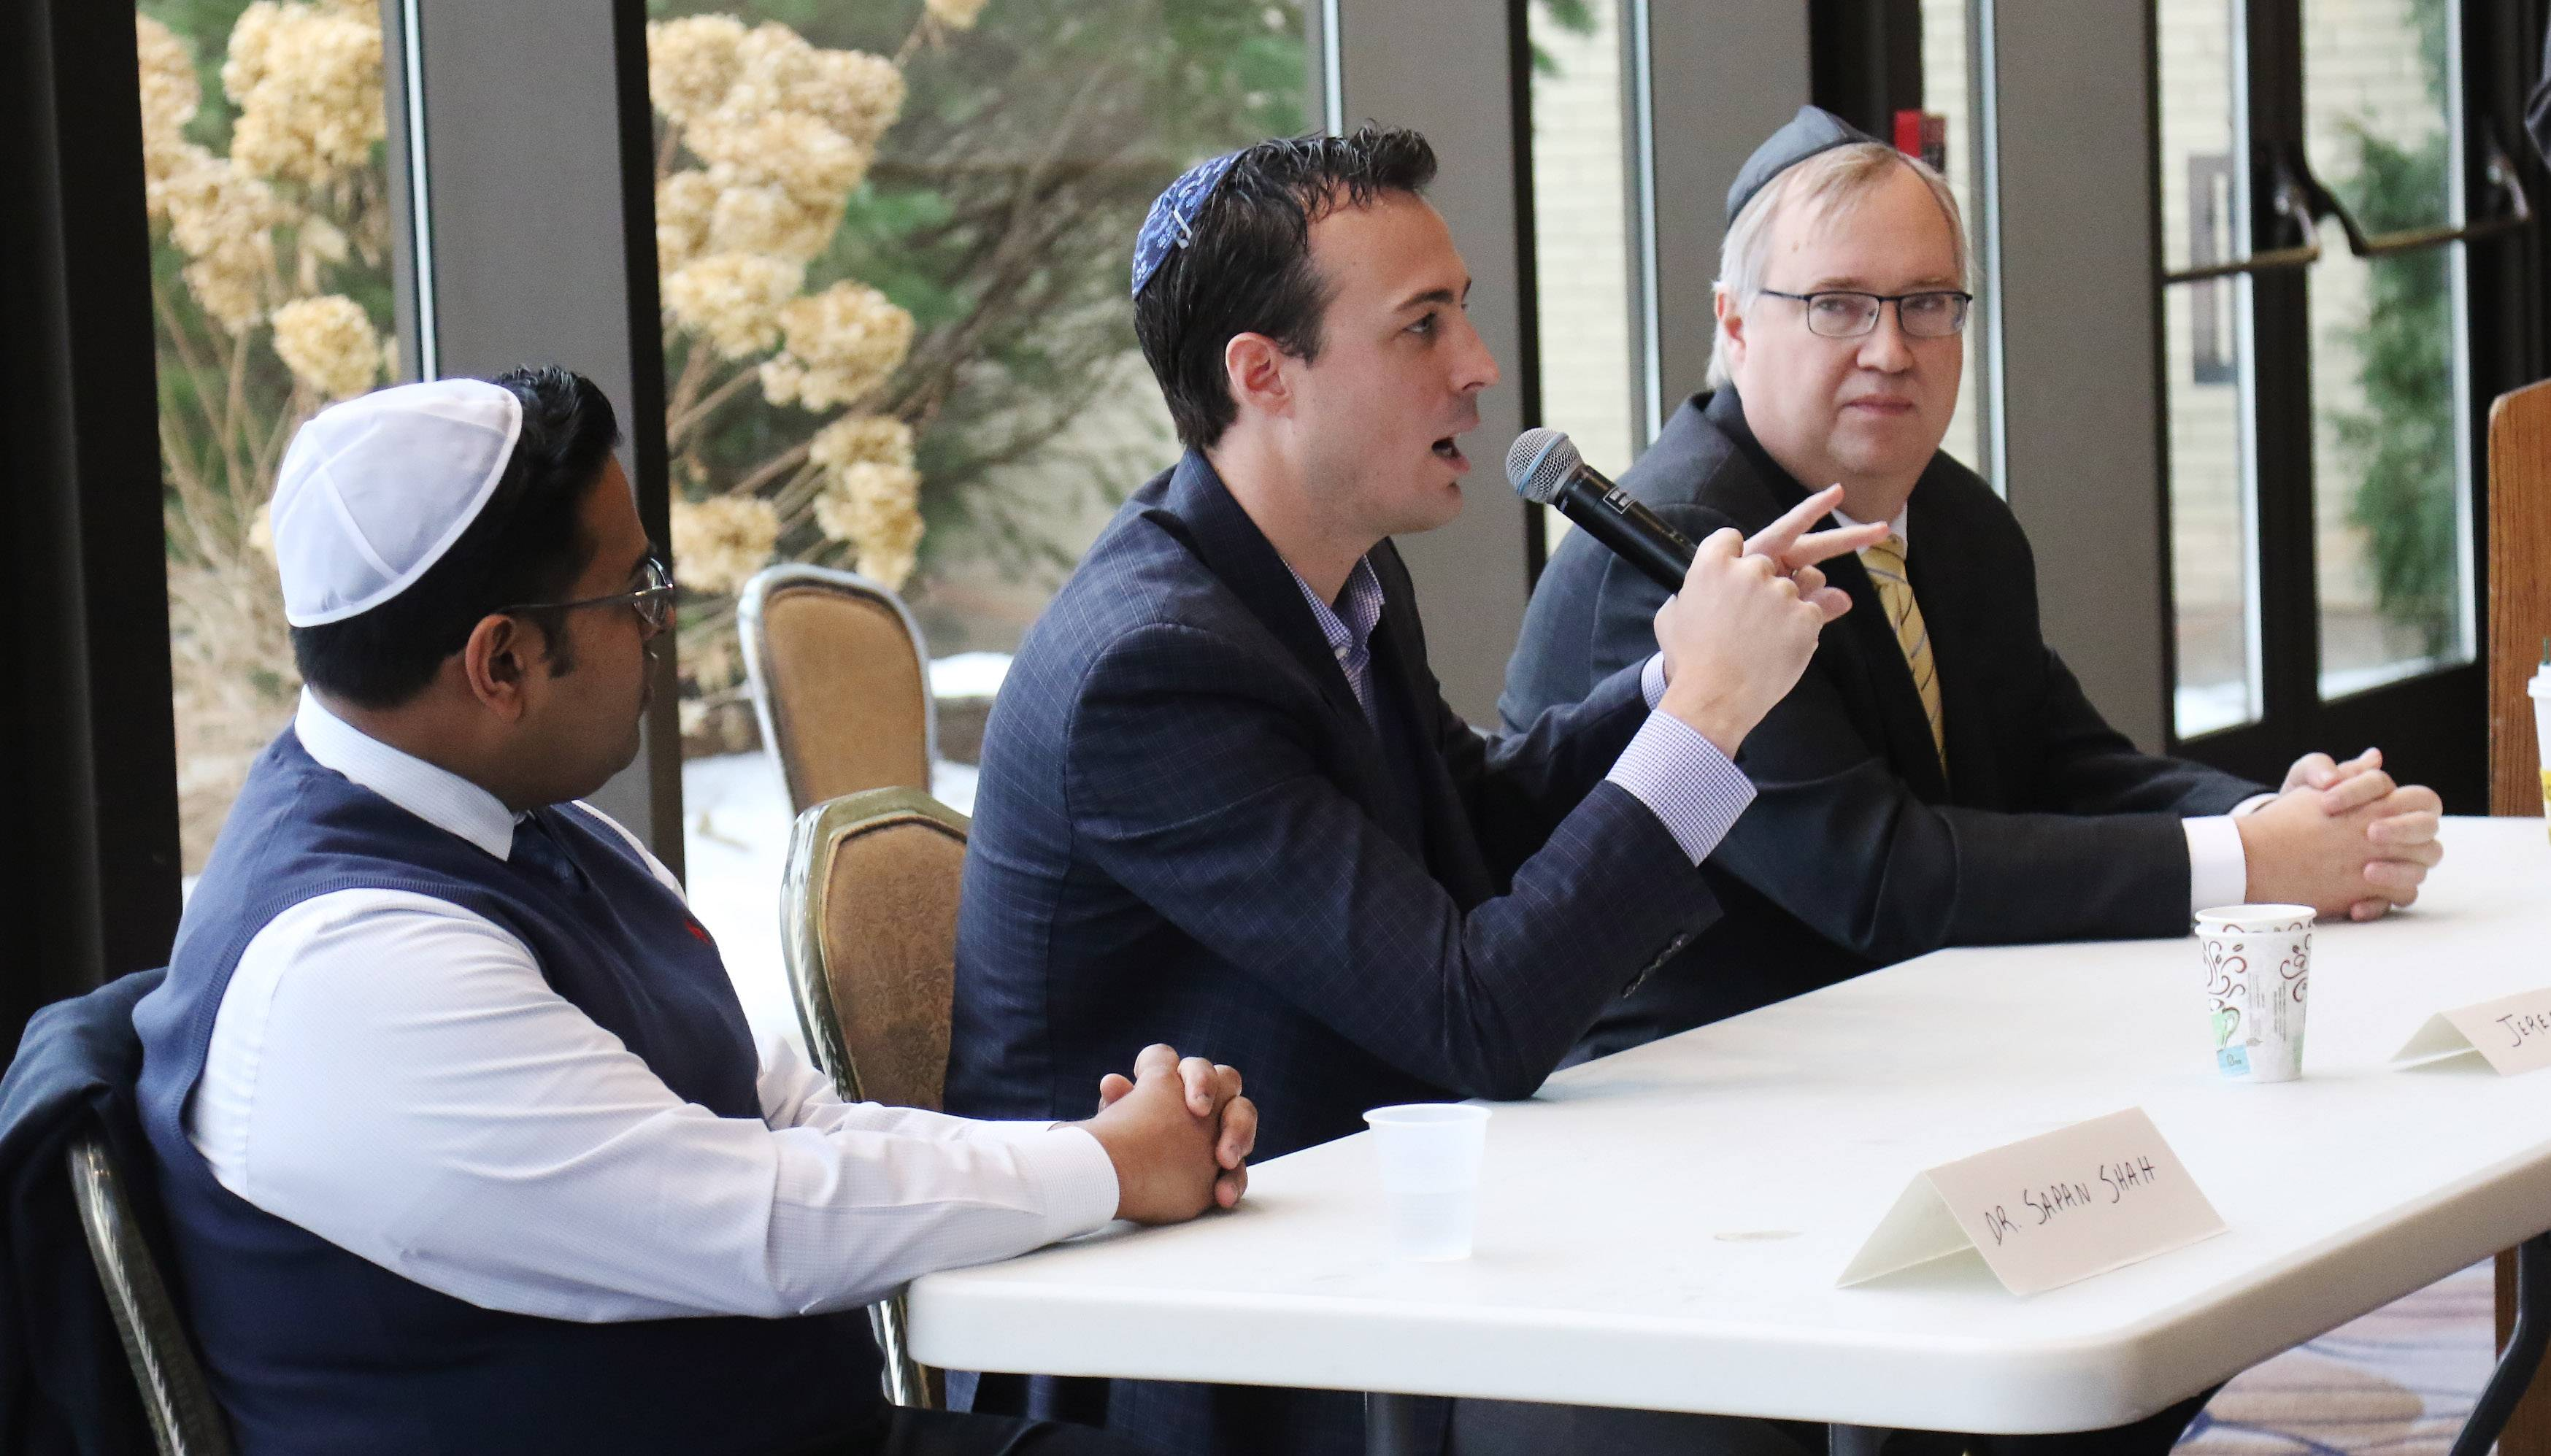 Republican congressional candidate Jeremy Wynes, center, talks while fellow candidates Dr. Sapan Shah, left, and Douglas Bennett listen during a recent political forum at a Highland Park synagogue.